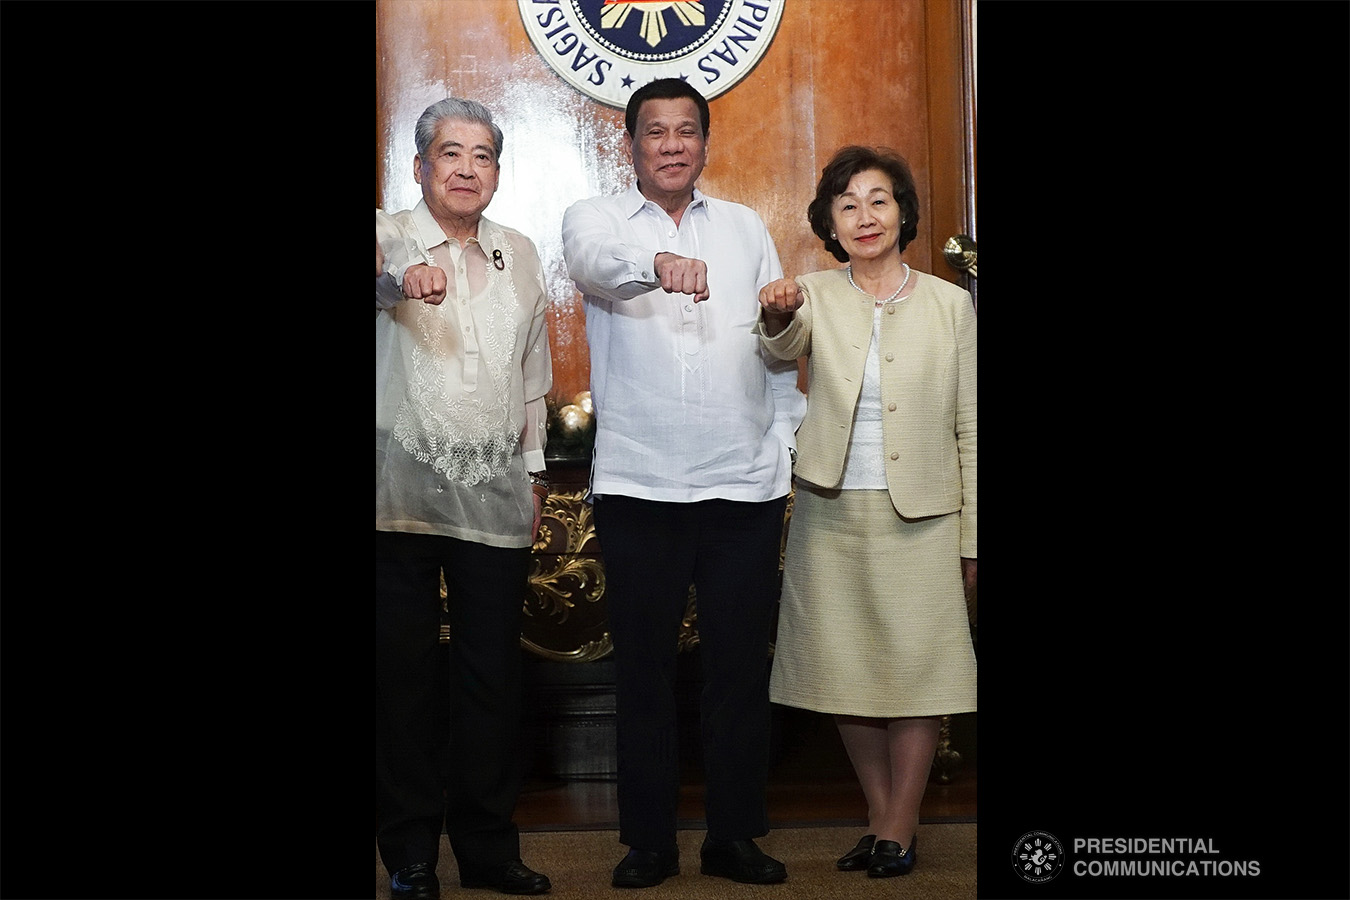 President Rodrigo Roa Duterte strikes his signature pose with Japan House of Councillors President Chuichi Date and his spouse Yuko during their courtesy call on the President at the Malacañan Palace on January 8, 2018. RENE LUMAWAG/PRESIDENTIAL PHOTO